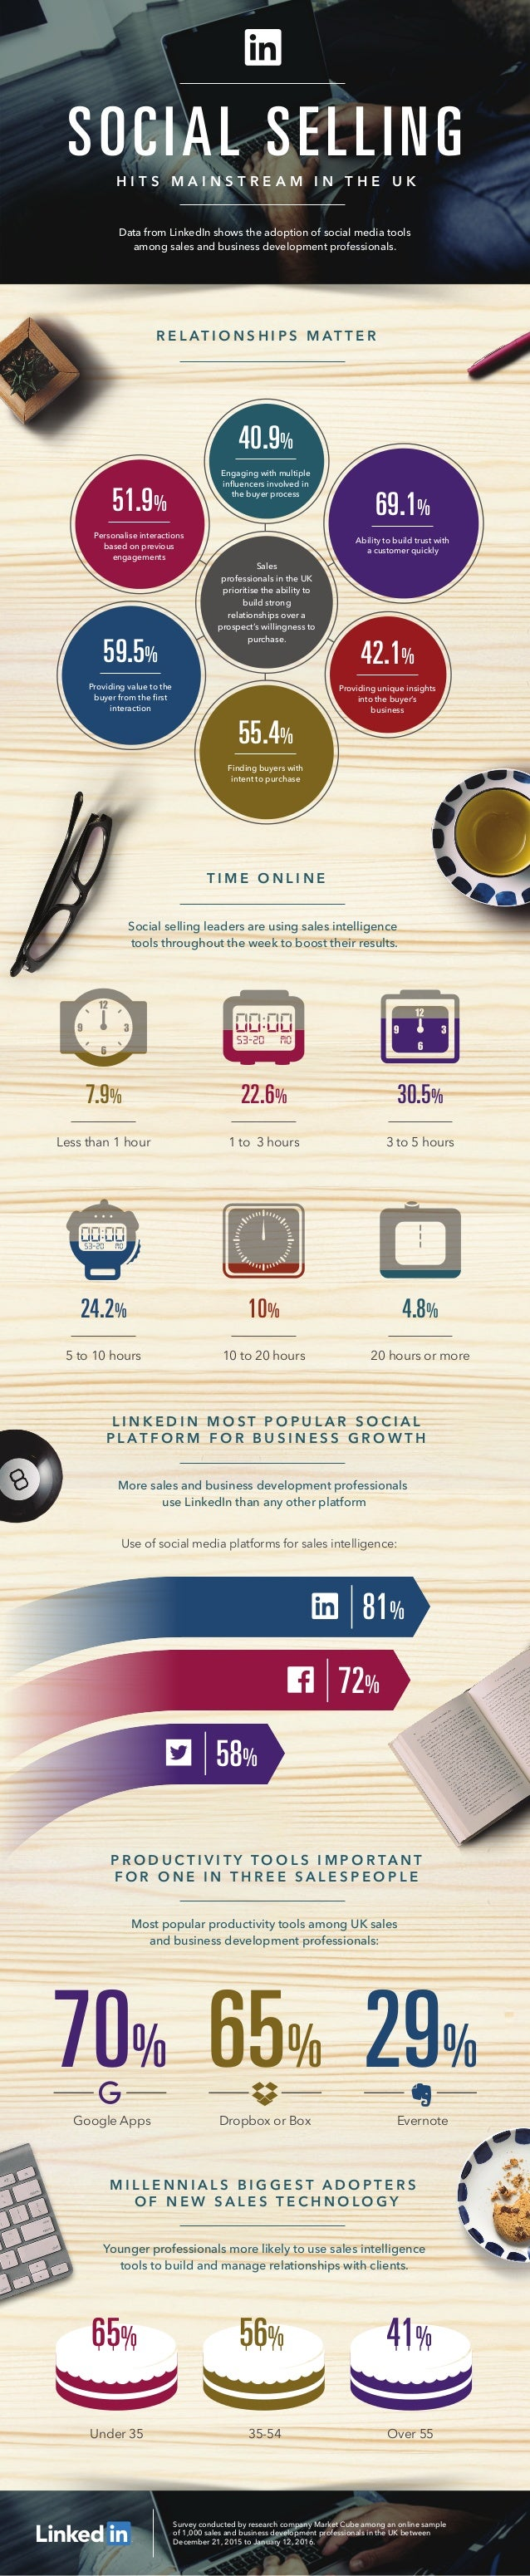 Data from LinkedIn shows the adoption of social media tools among sales and business development professionals. SOCIAL SEL...